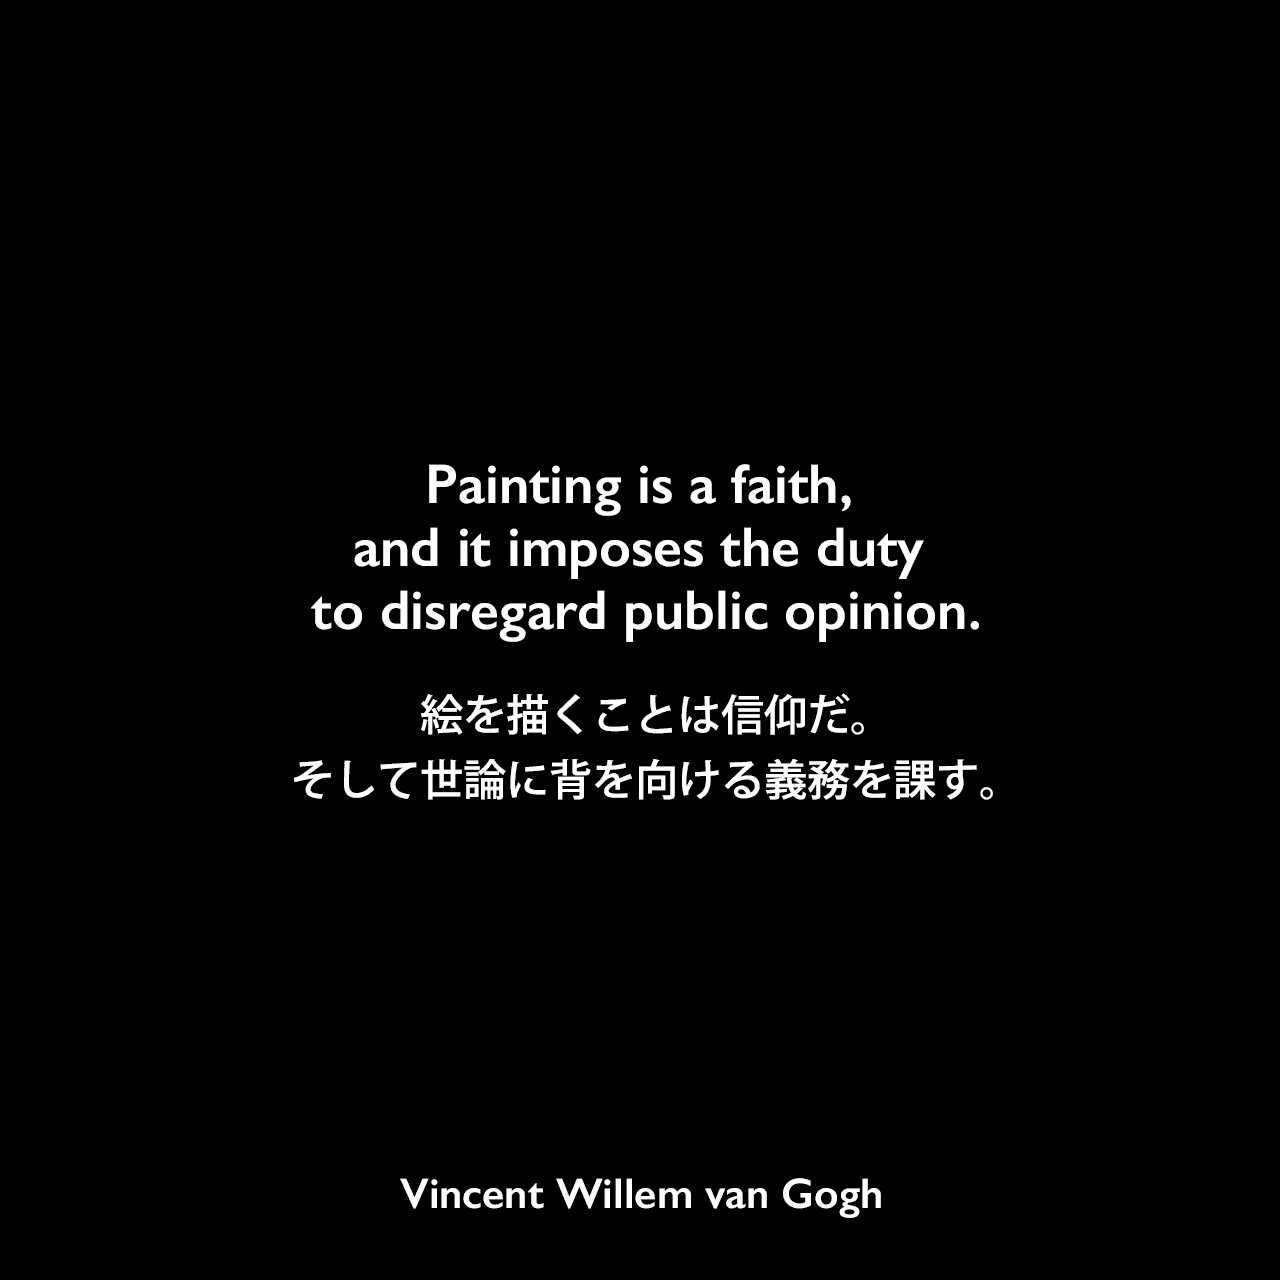 Painting is a faith, and it imposes the duty to disregard public opinion.絵を描くことは信仰だ。そして世論に背を向ける義務を課す。Vincent Willem van Gogh